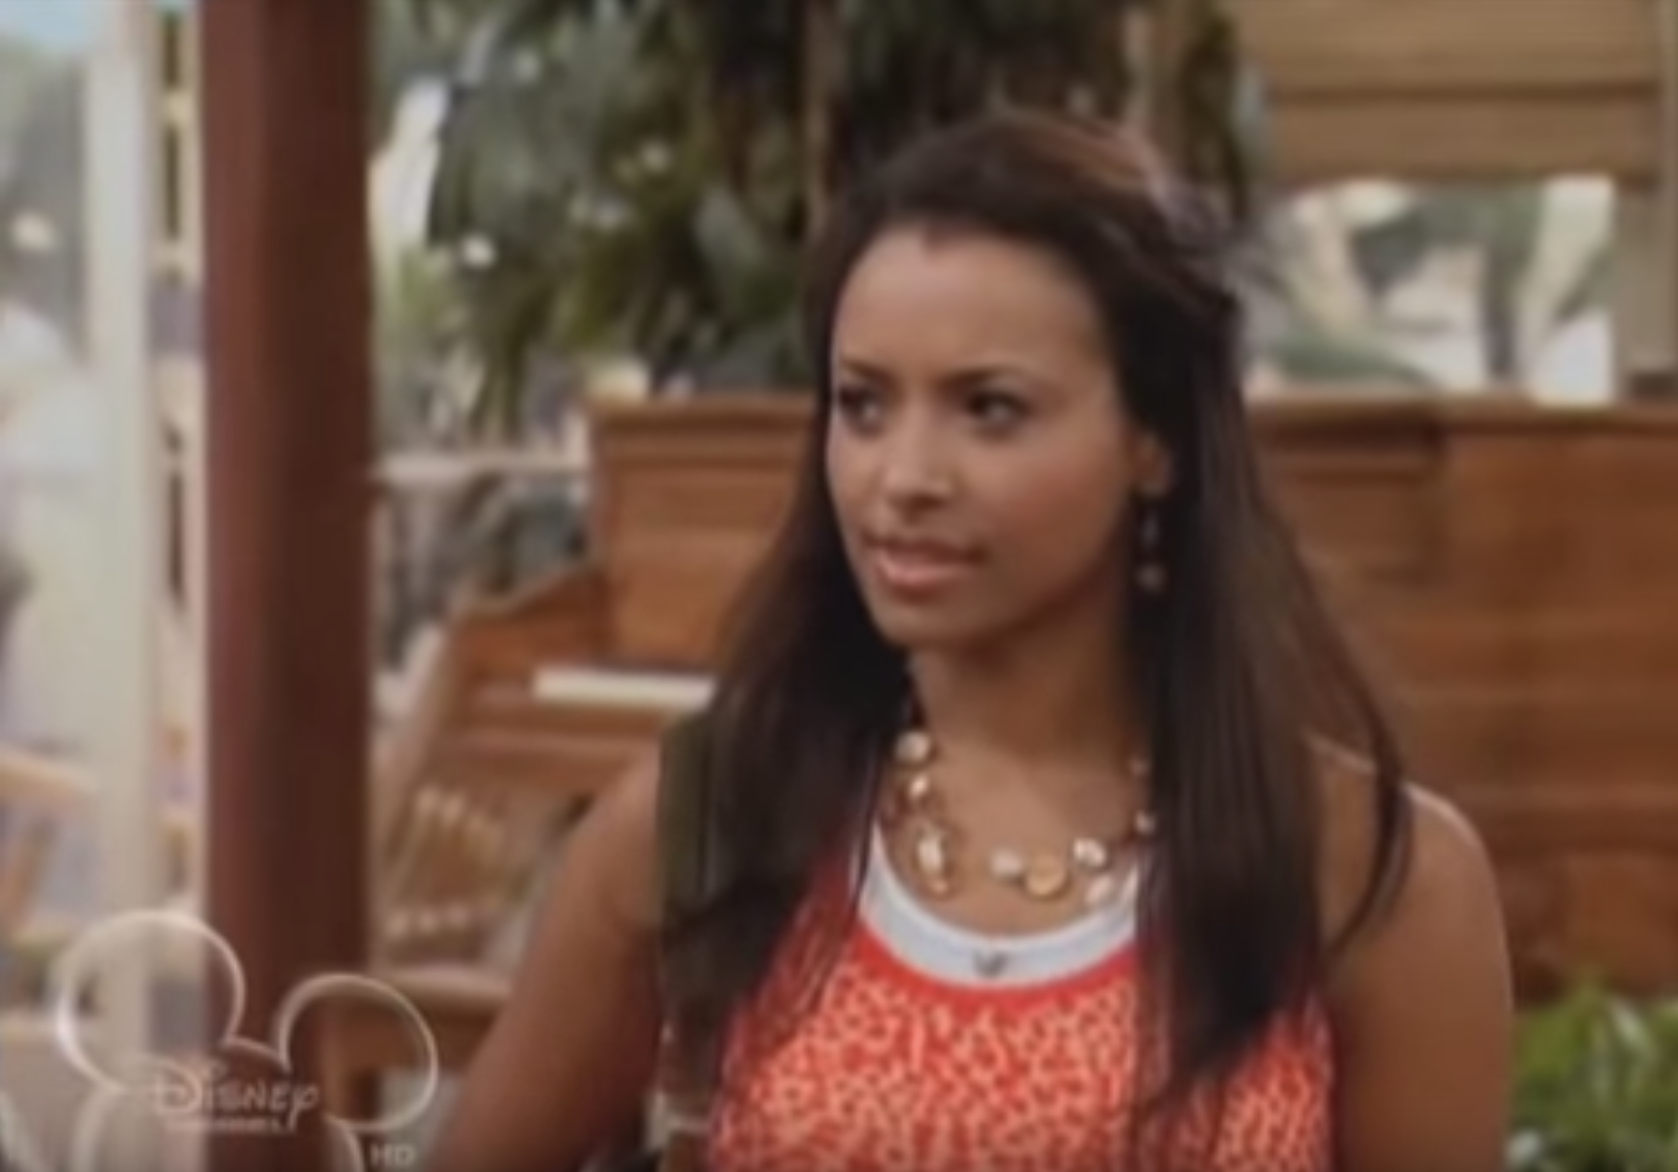 30 Disney Channel Celebrity Guests Stars You Probably Forgot About